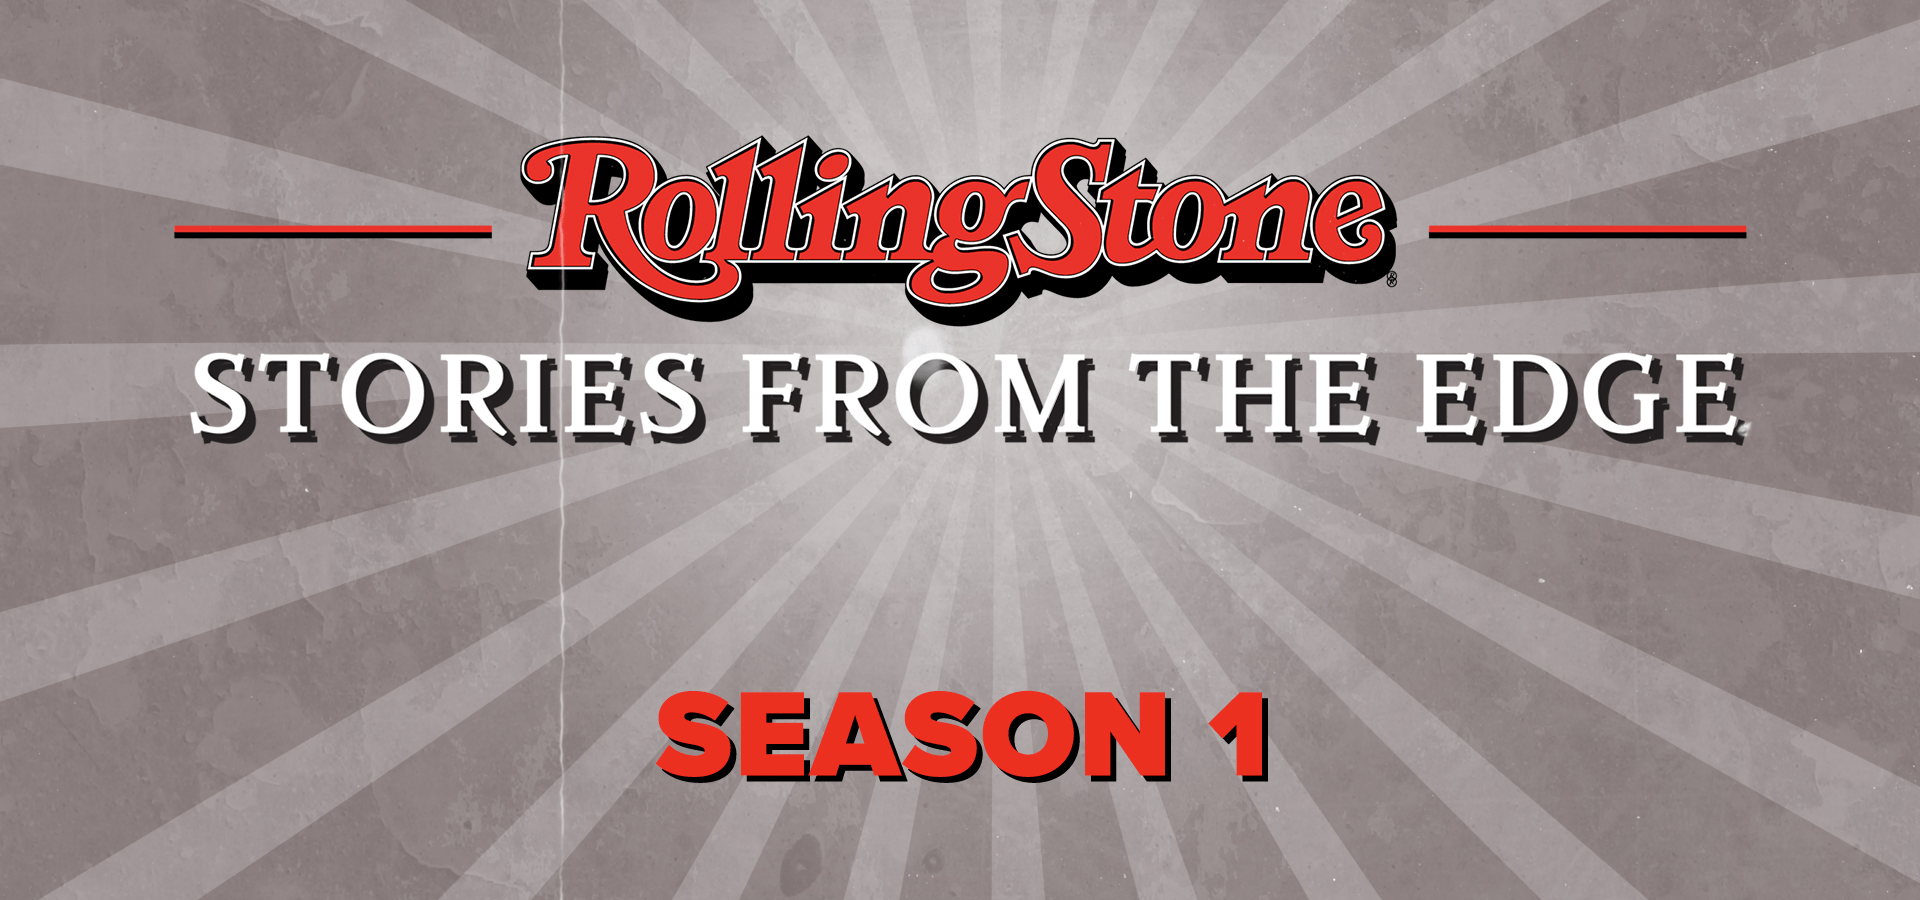 Rolling Stone: Stories from the Edge – Season 1